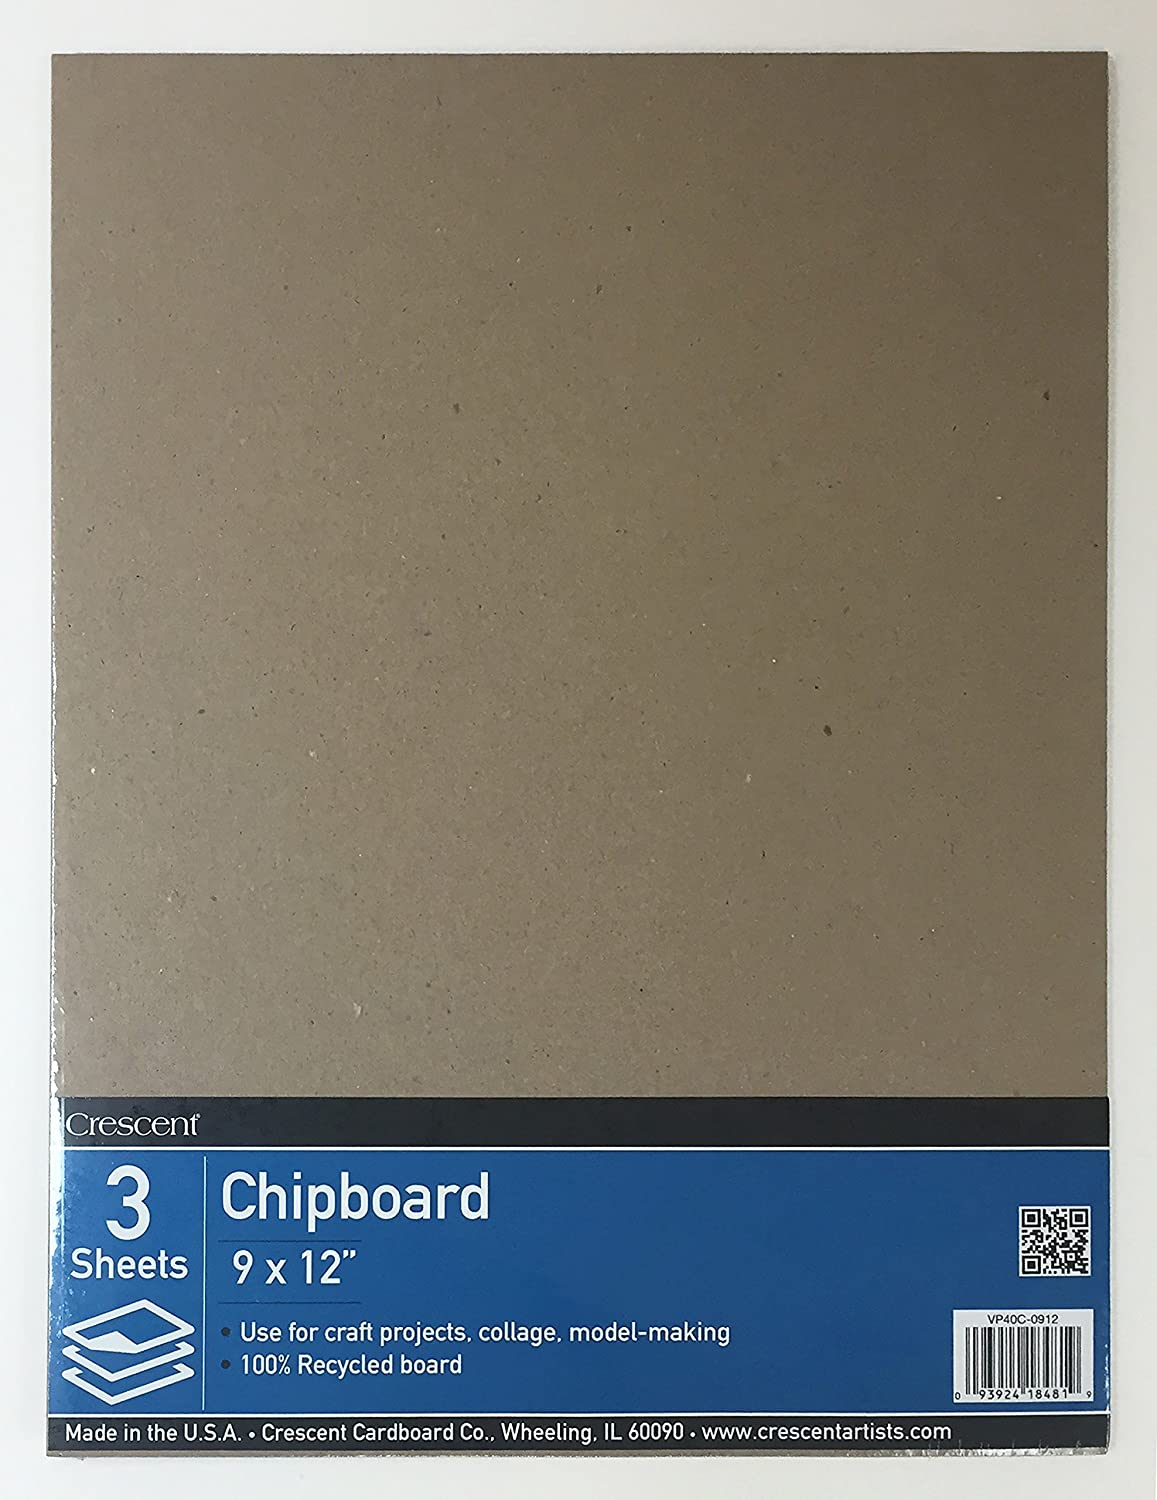 Crescent Cardboard Co Recycled Chipboard Value Pack -9-inch x 12-inch VP40C-0912